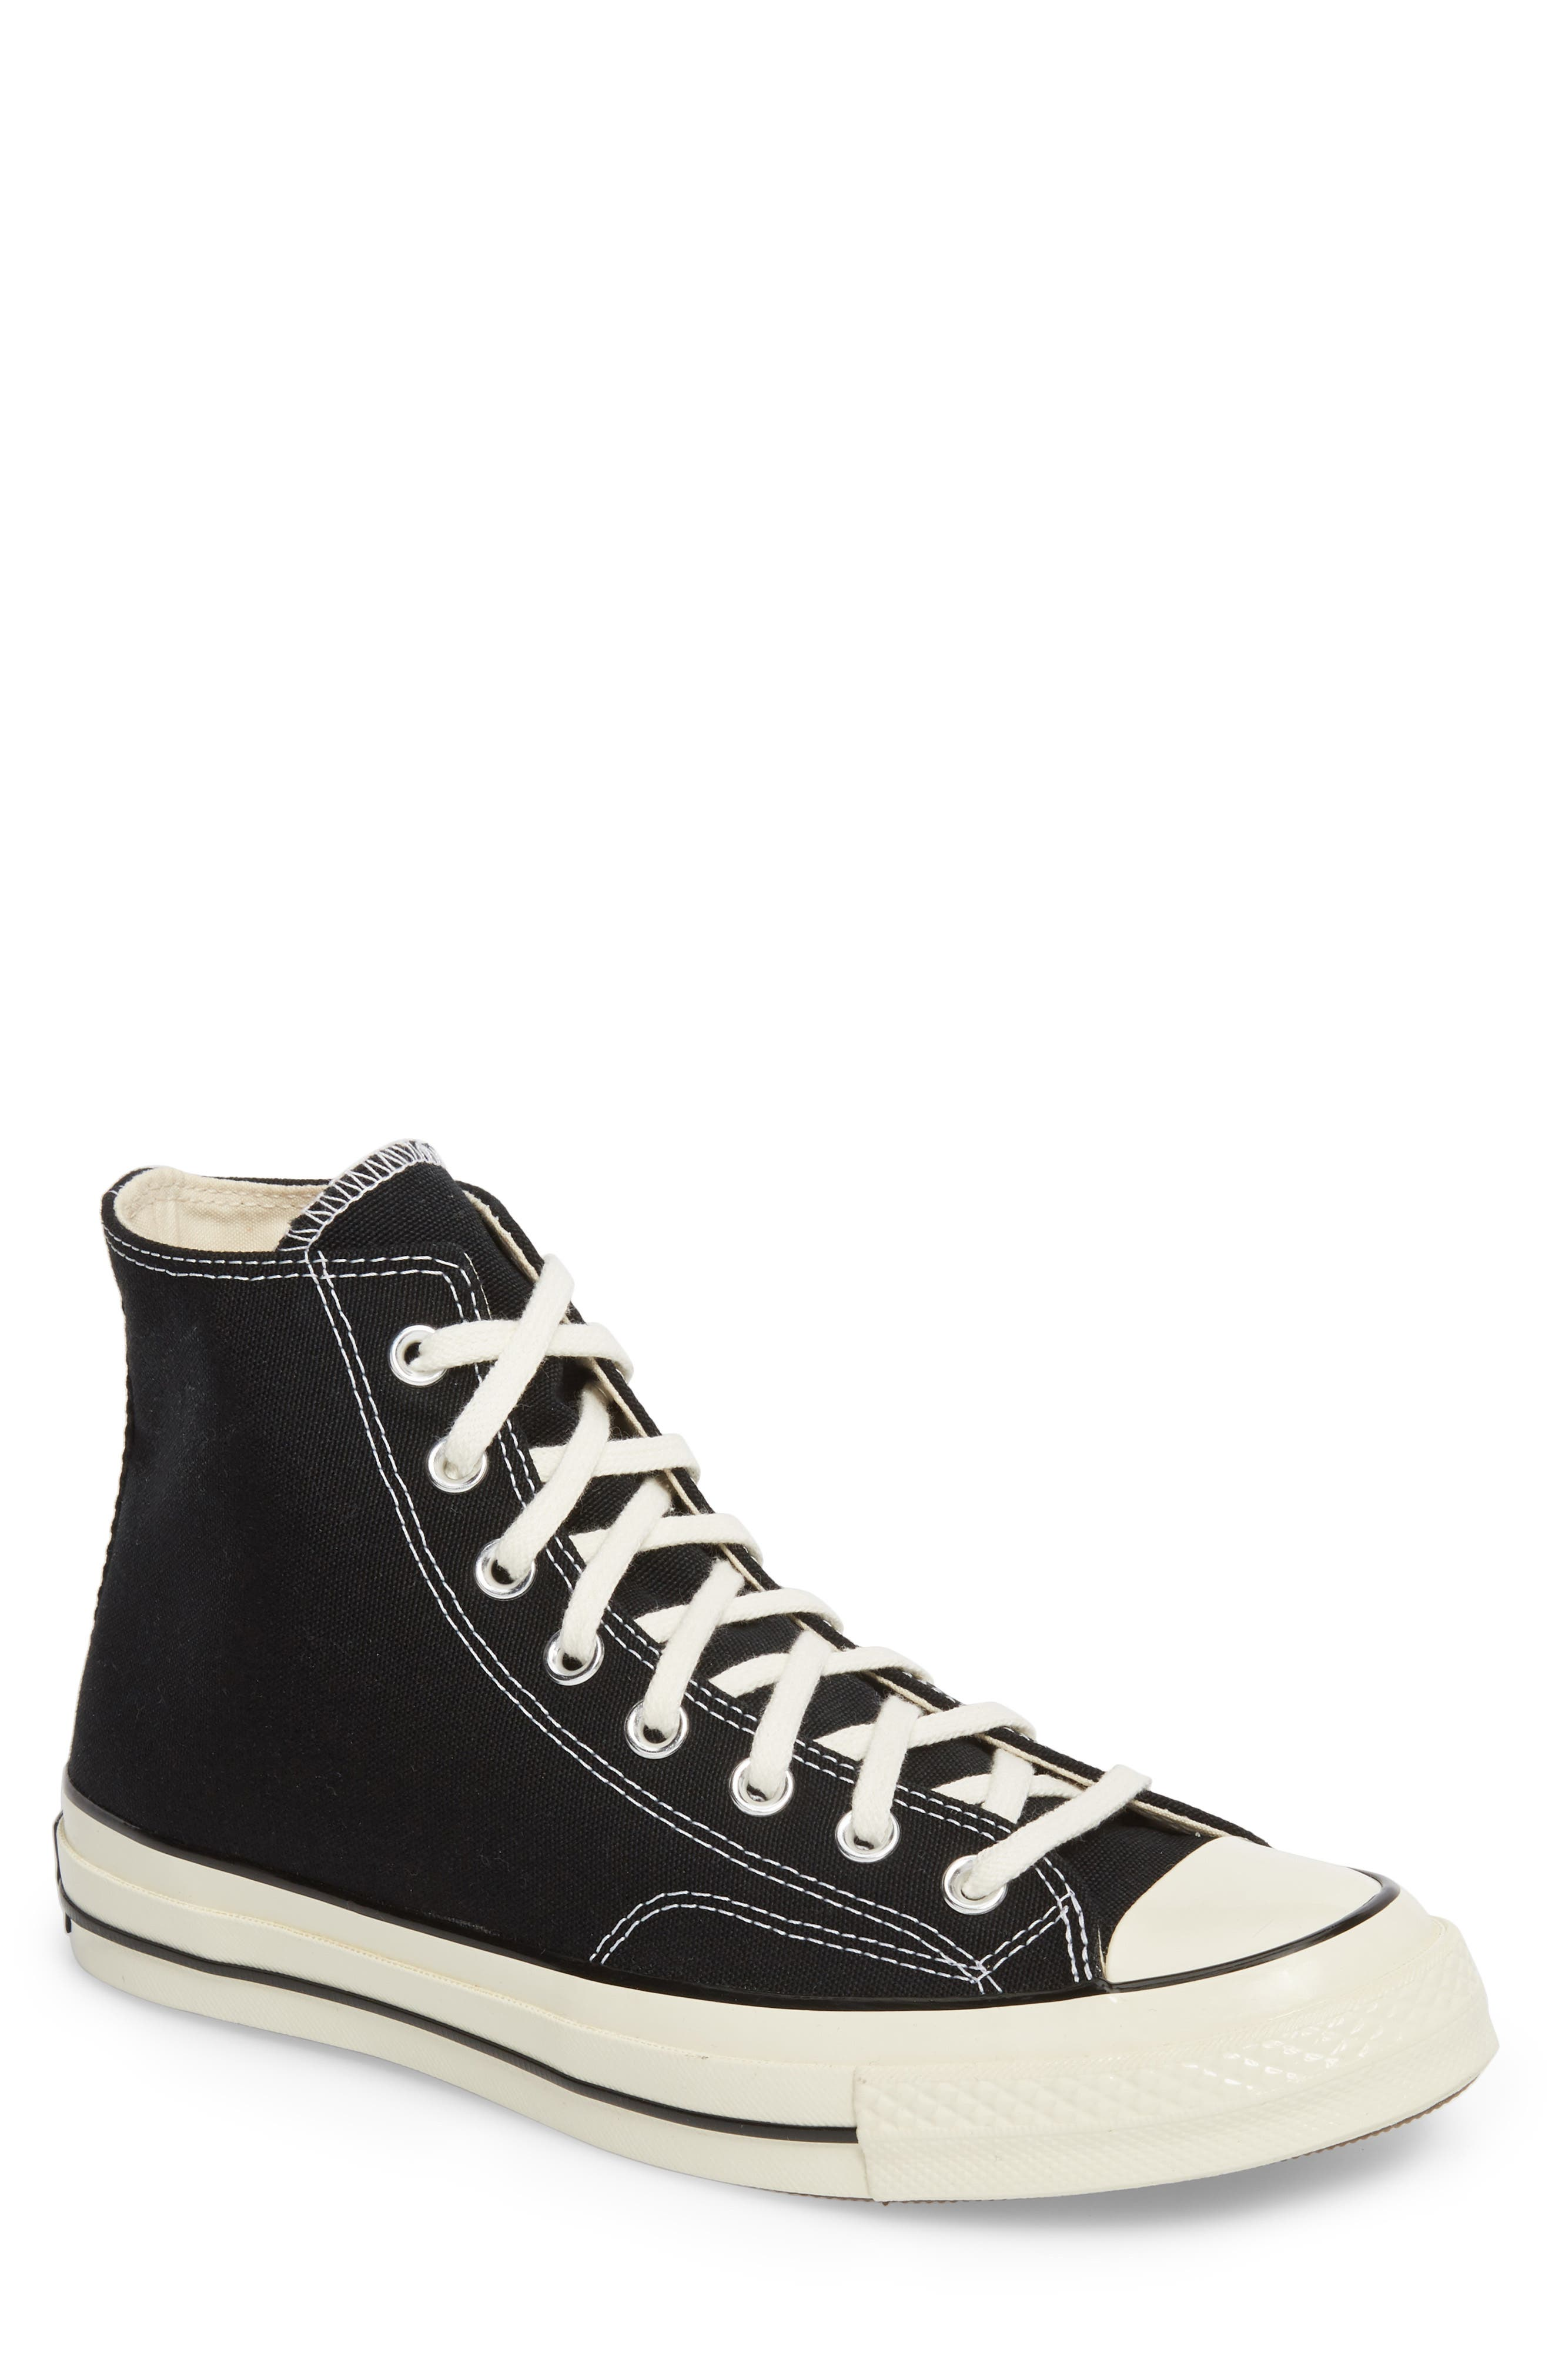 CONVERSE, Chuck Taylor<sup>®</sup> All Star<sup>®</sup> 70 High Top Sneaker, Main thumbnail 1, color, BLACK